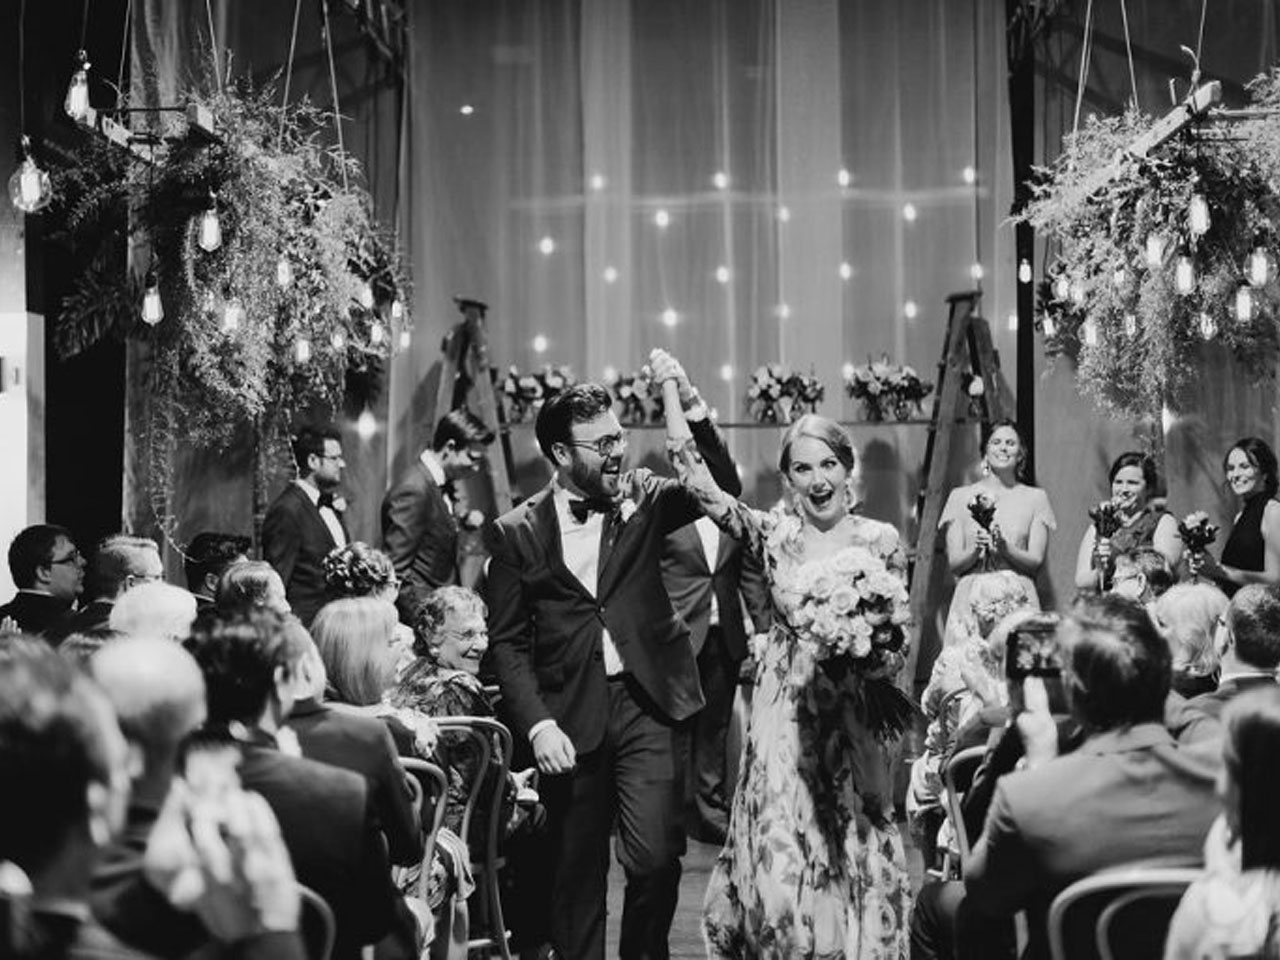 Black and white image of couple walking down the aisle between rows of seated guests